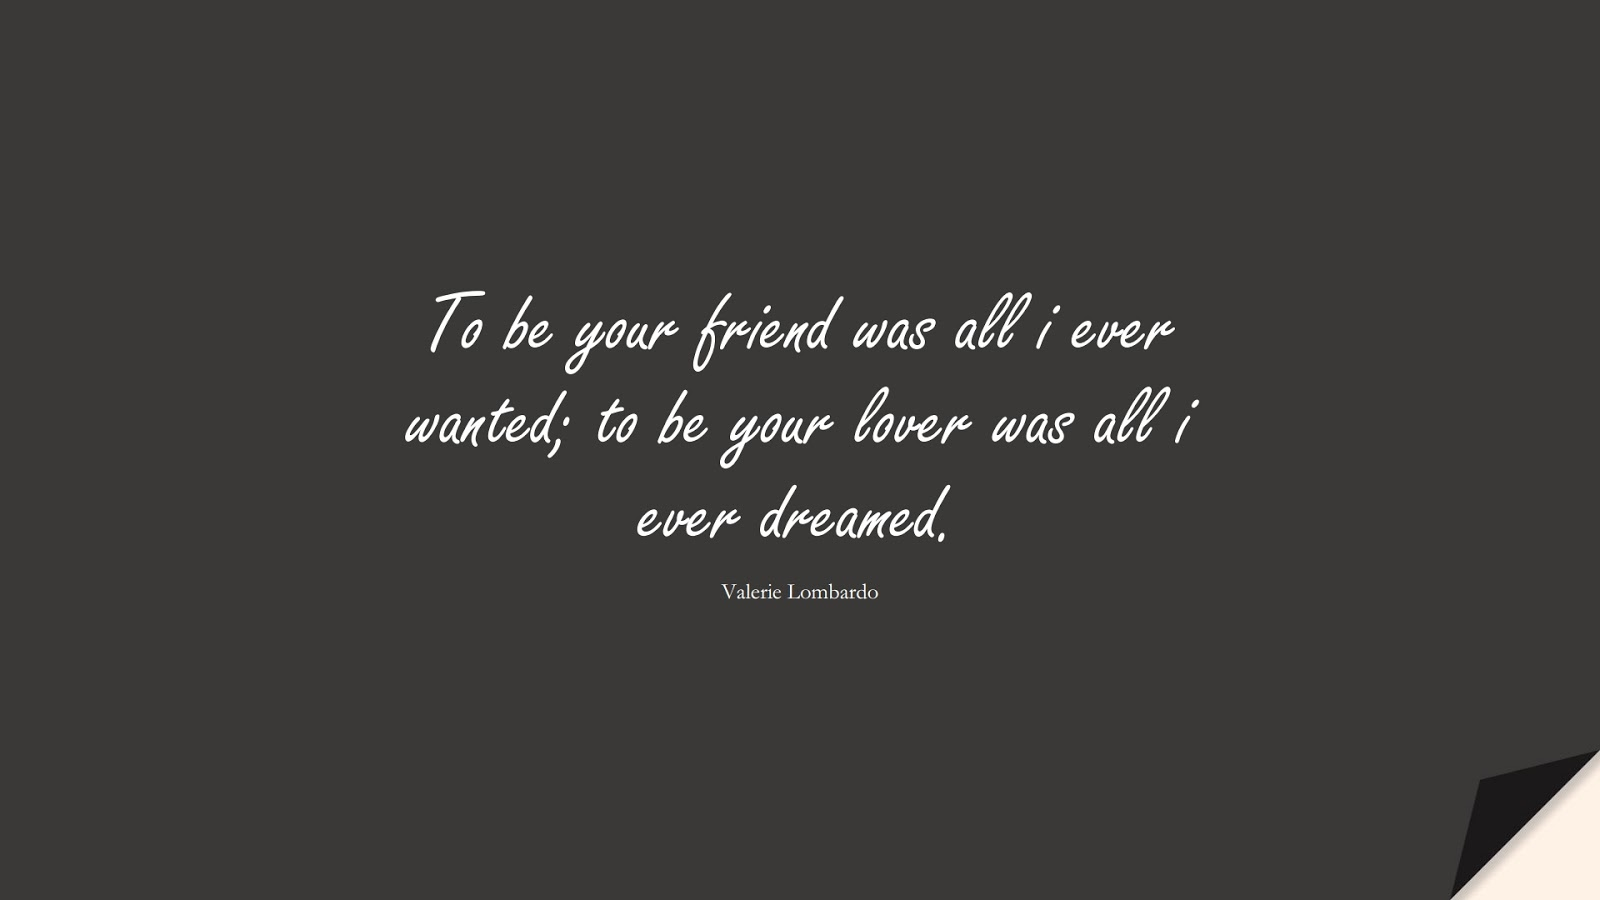 To be your friend was all i ever wanted; to be your lover was all i ever dreamed. (Valerie Lombardo);  #LoveQuotes